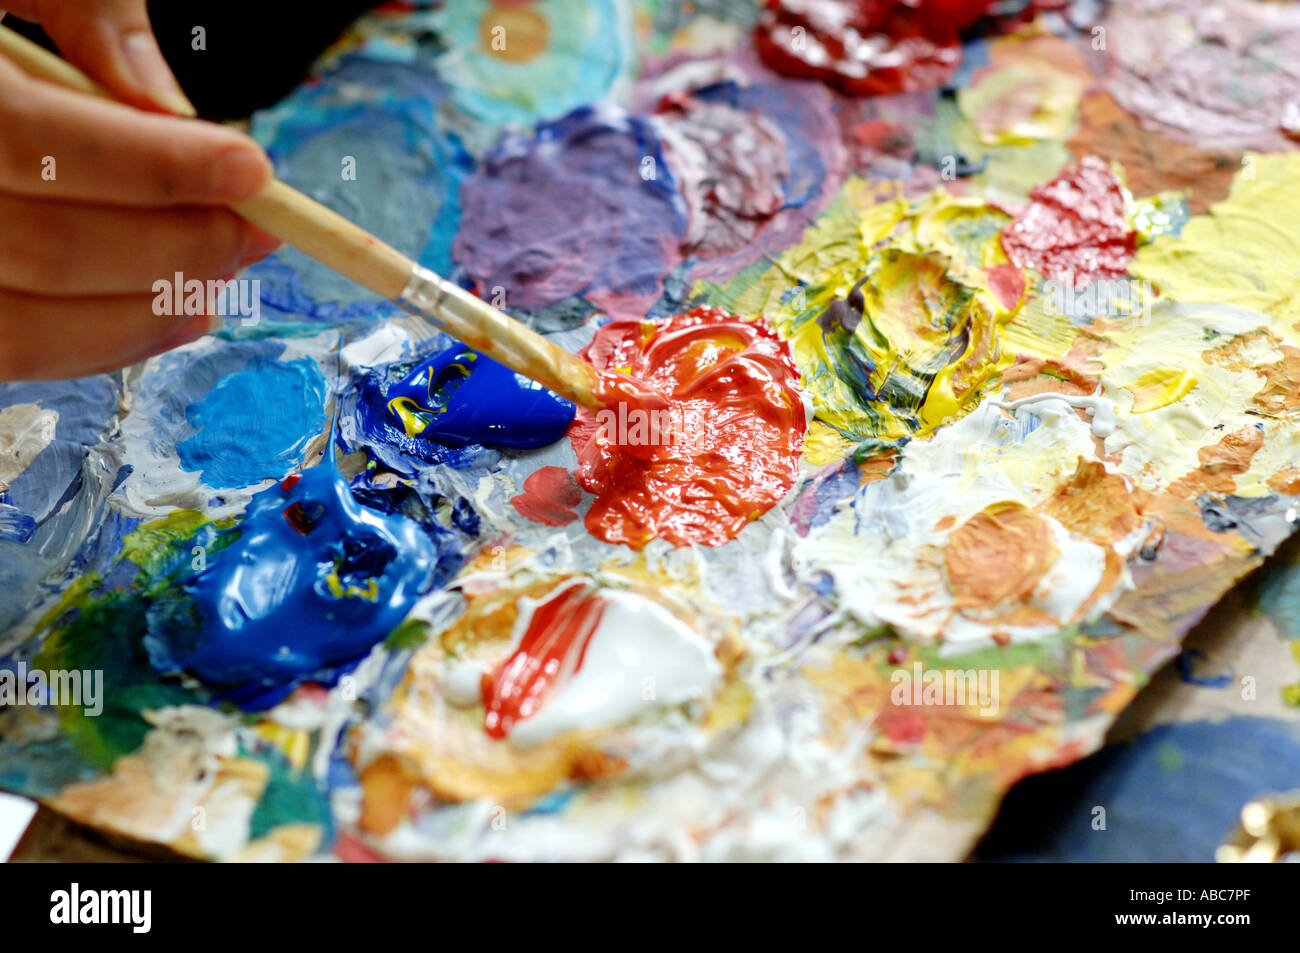 Painting with acrylic colour - Stock Image